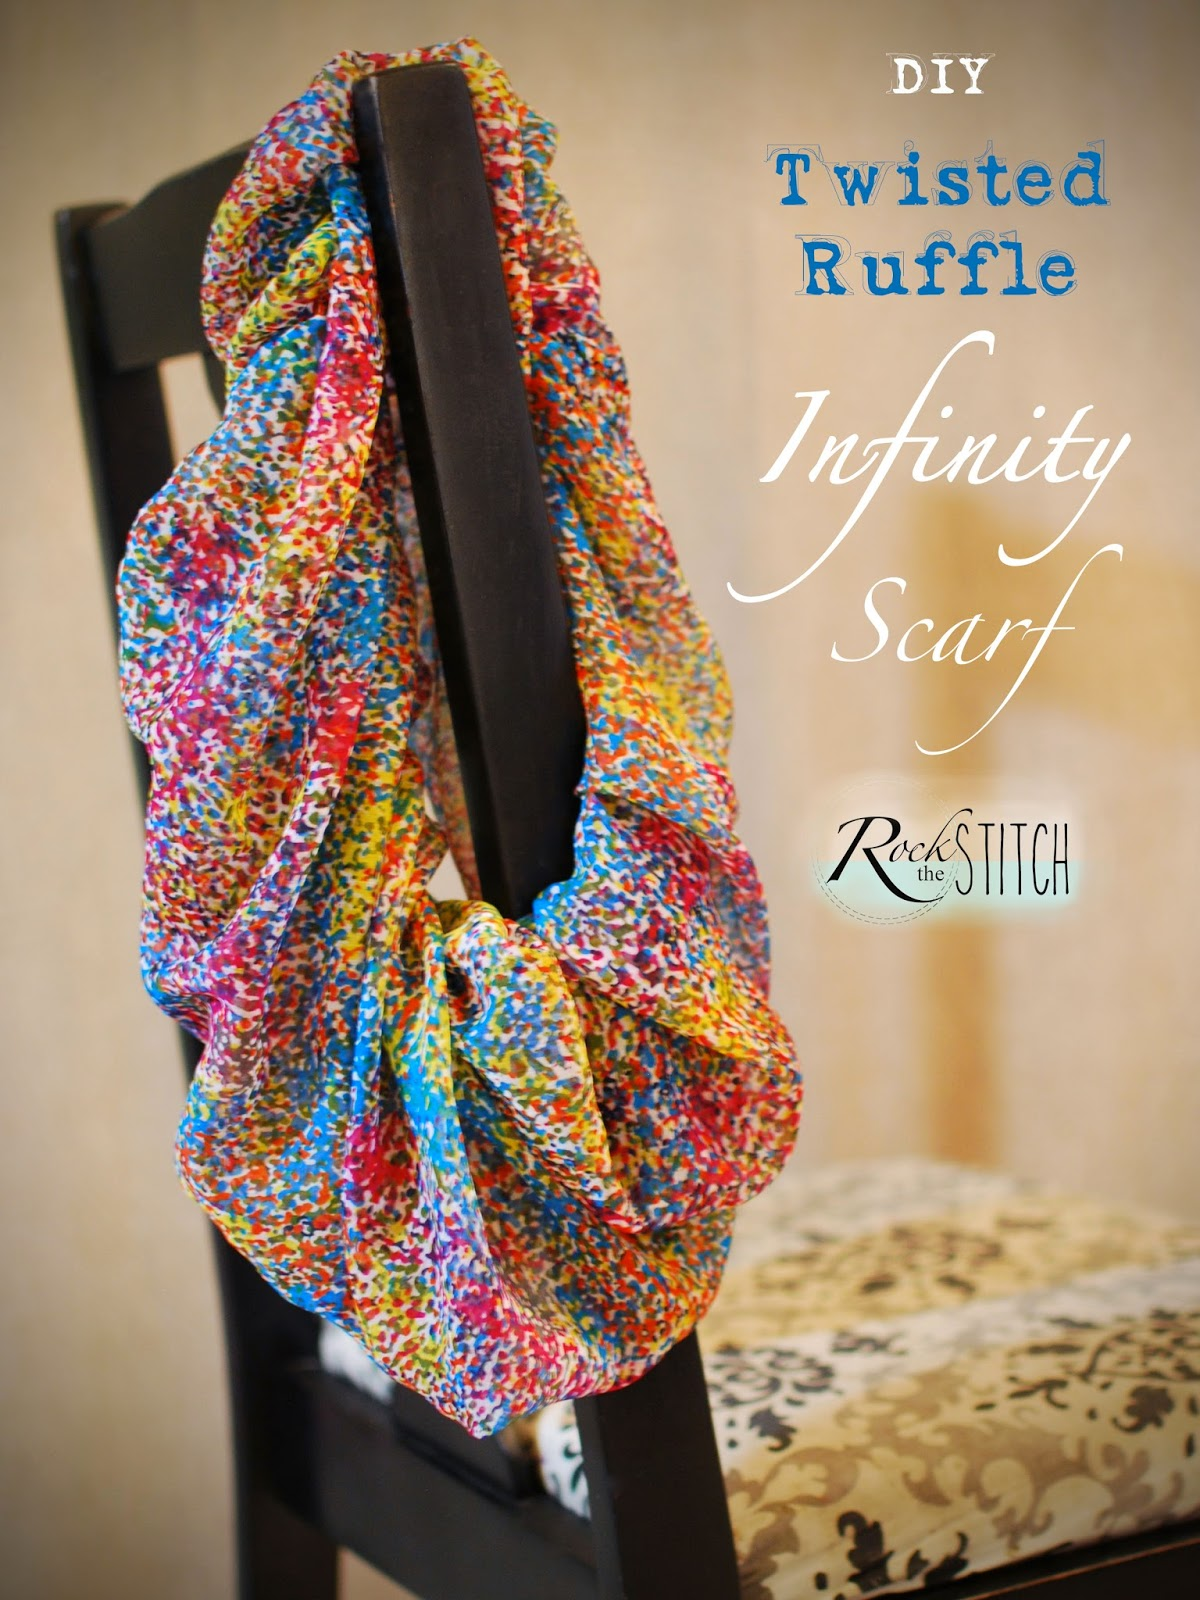 http://rockthestitch.blogspot.com/2014/01/diy-twisted-ruffle-infinity-scarf.html